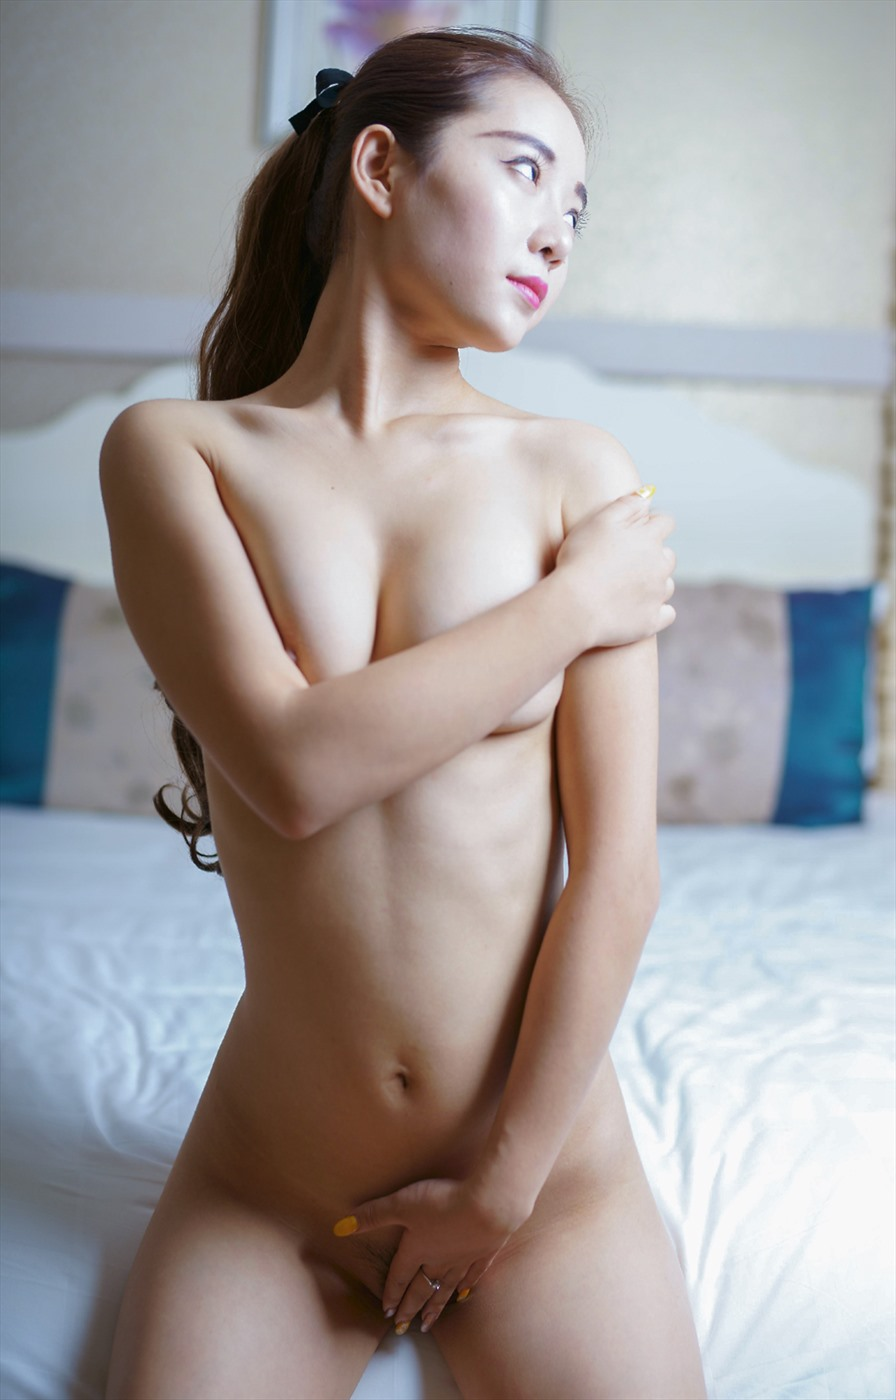 Phrase Taiwanes pretty Nude MODEL think, that